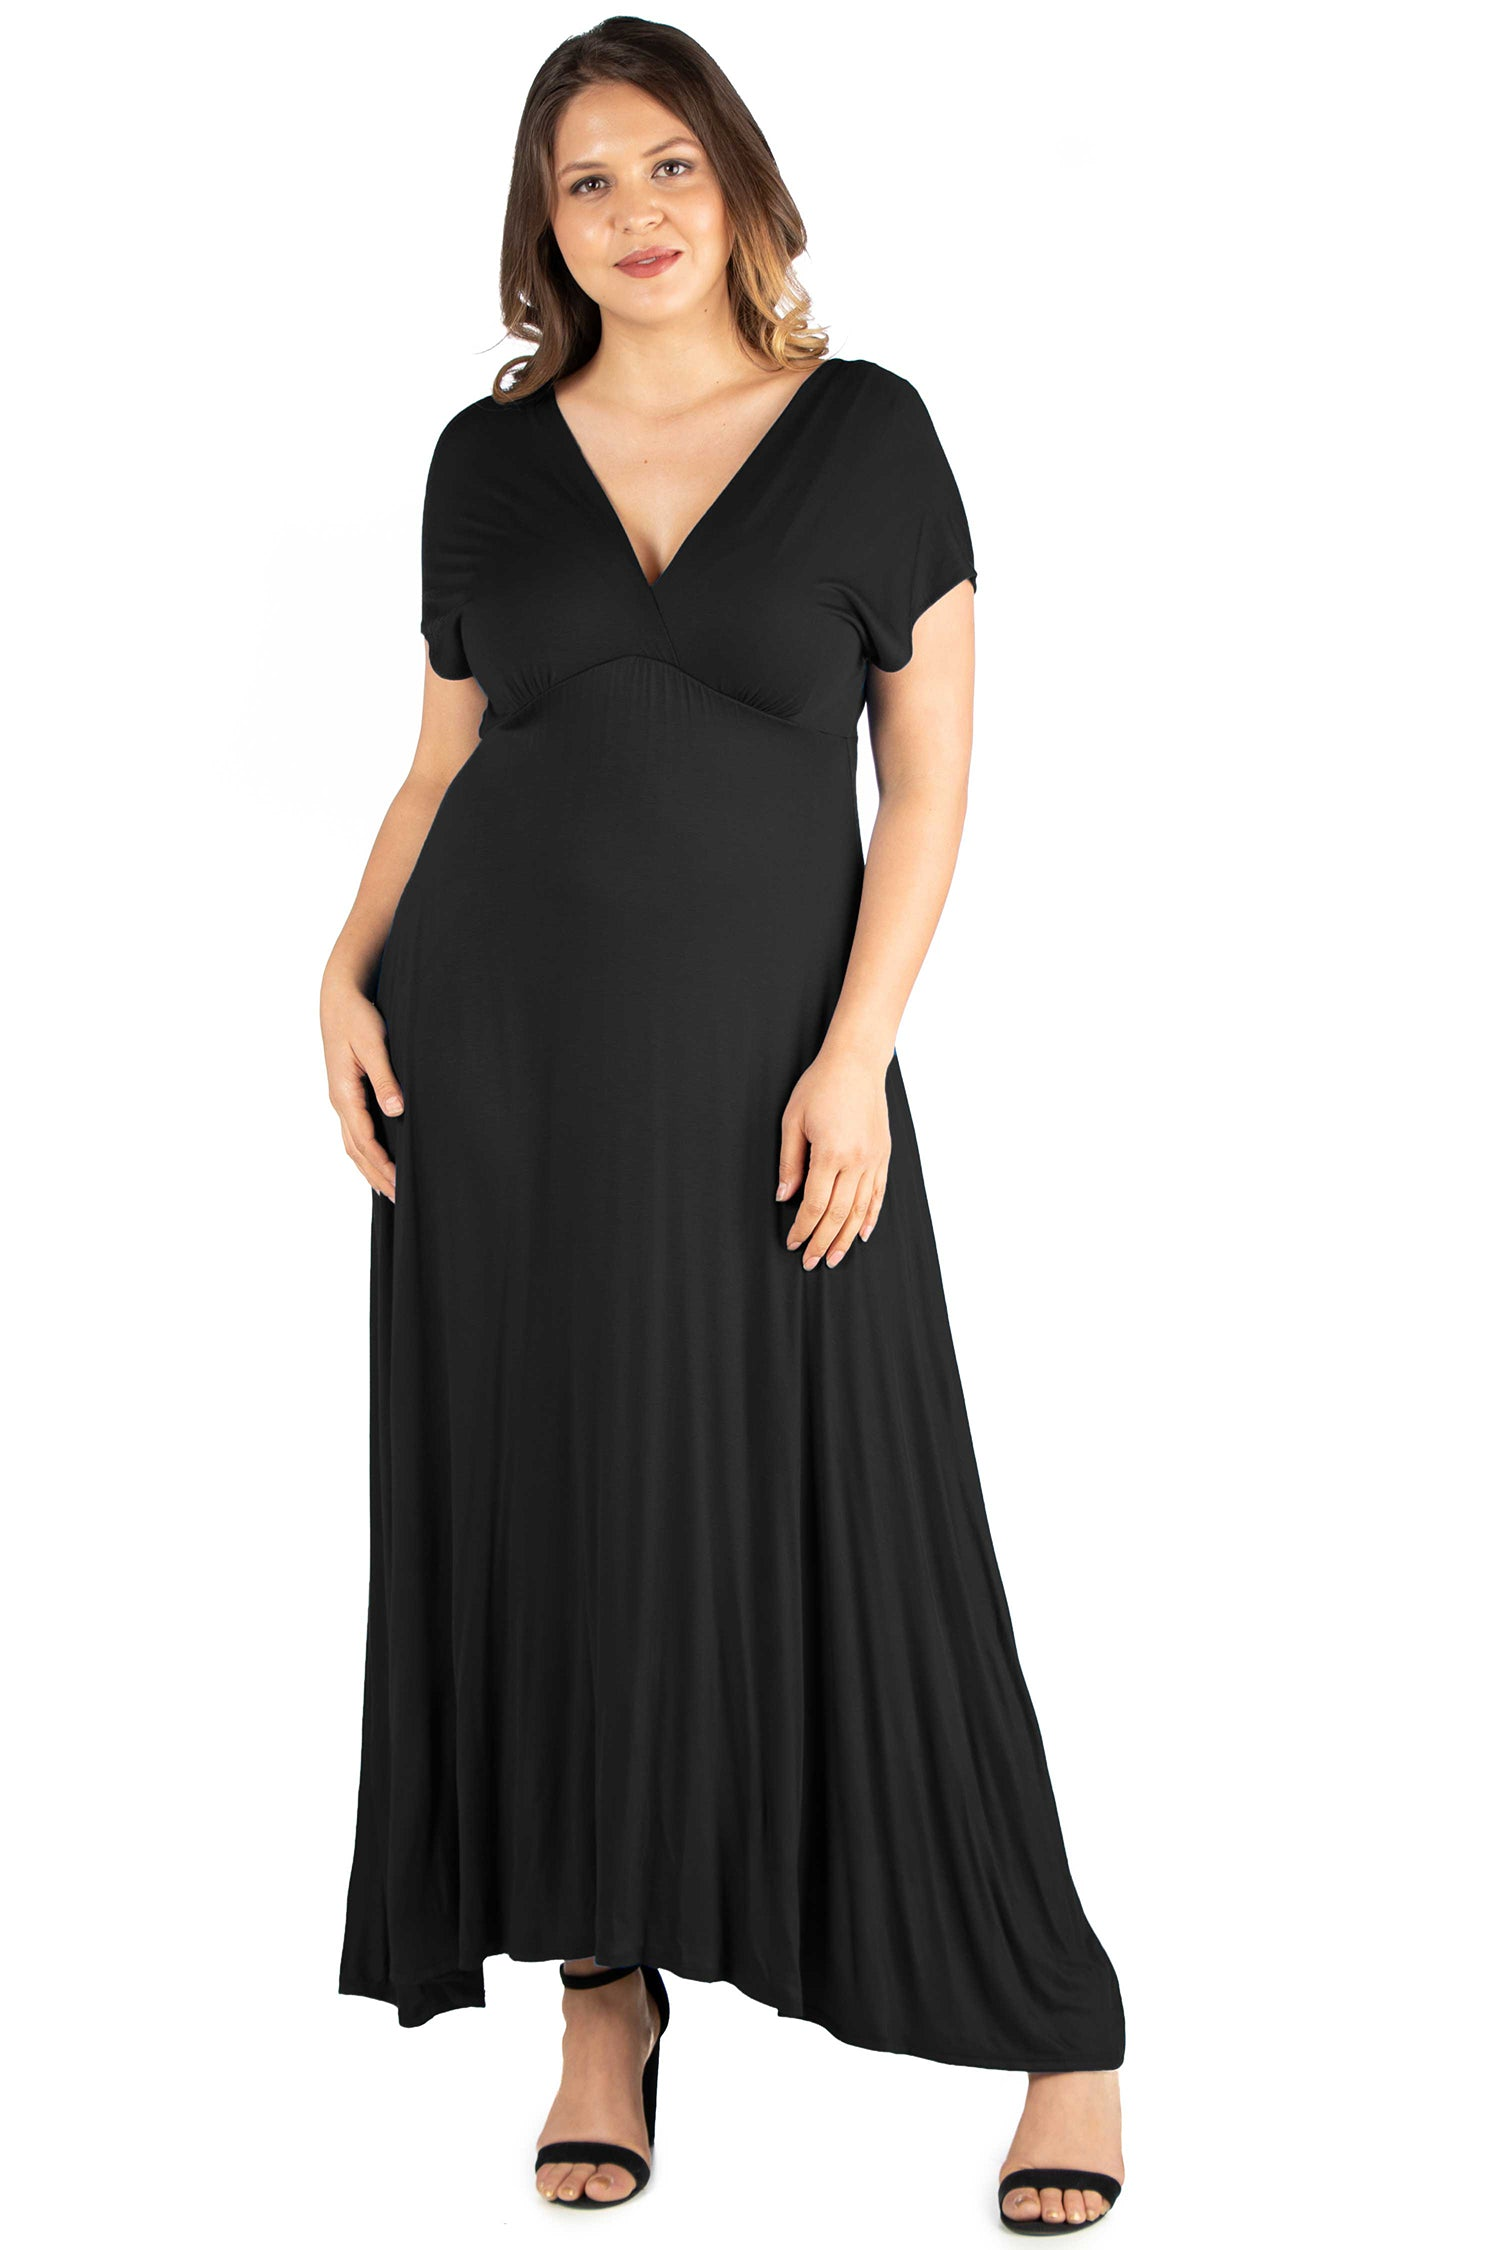 24seven Comfort Apparel Empire Waist V Neck Plus Size Maxi Dress-DRESSES-24Seven Comfort Apparel-BLACK-1X-24/7 Comfort Apparel